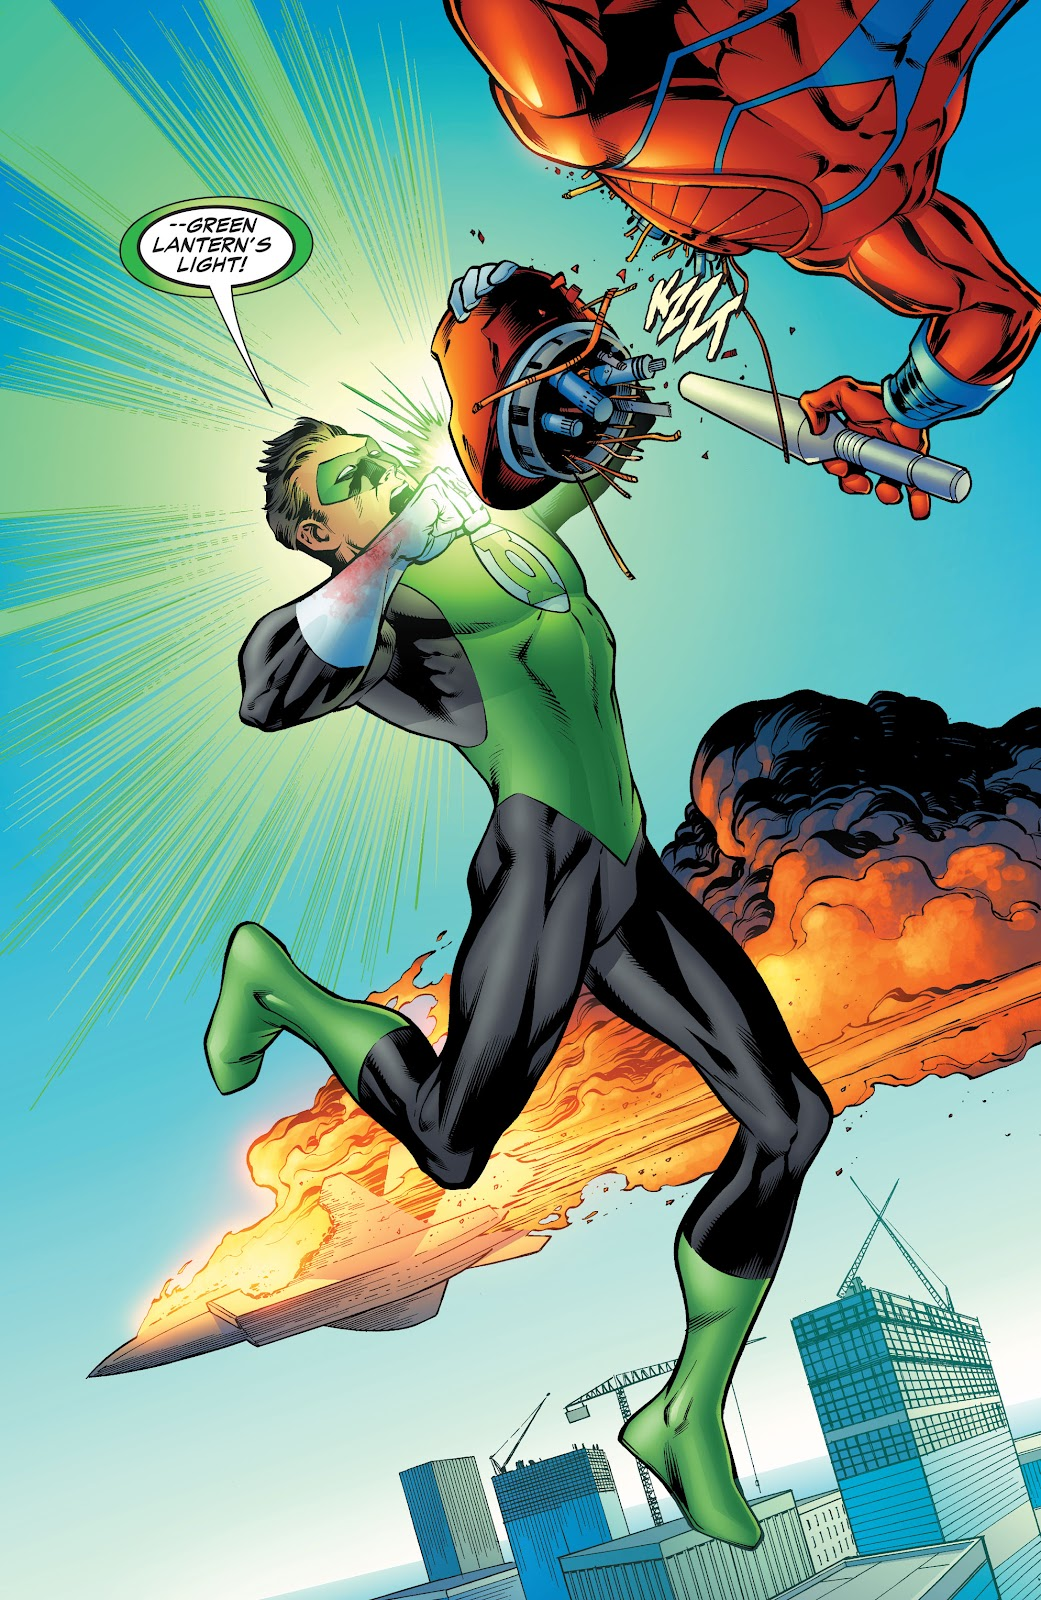 Read online Green Lantern by Geoff Johns comic -  Issue # TPB 1 (Part 4) - 60